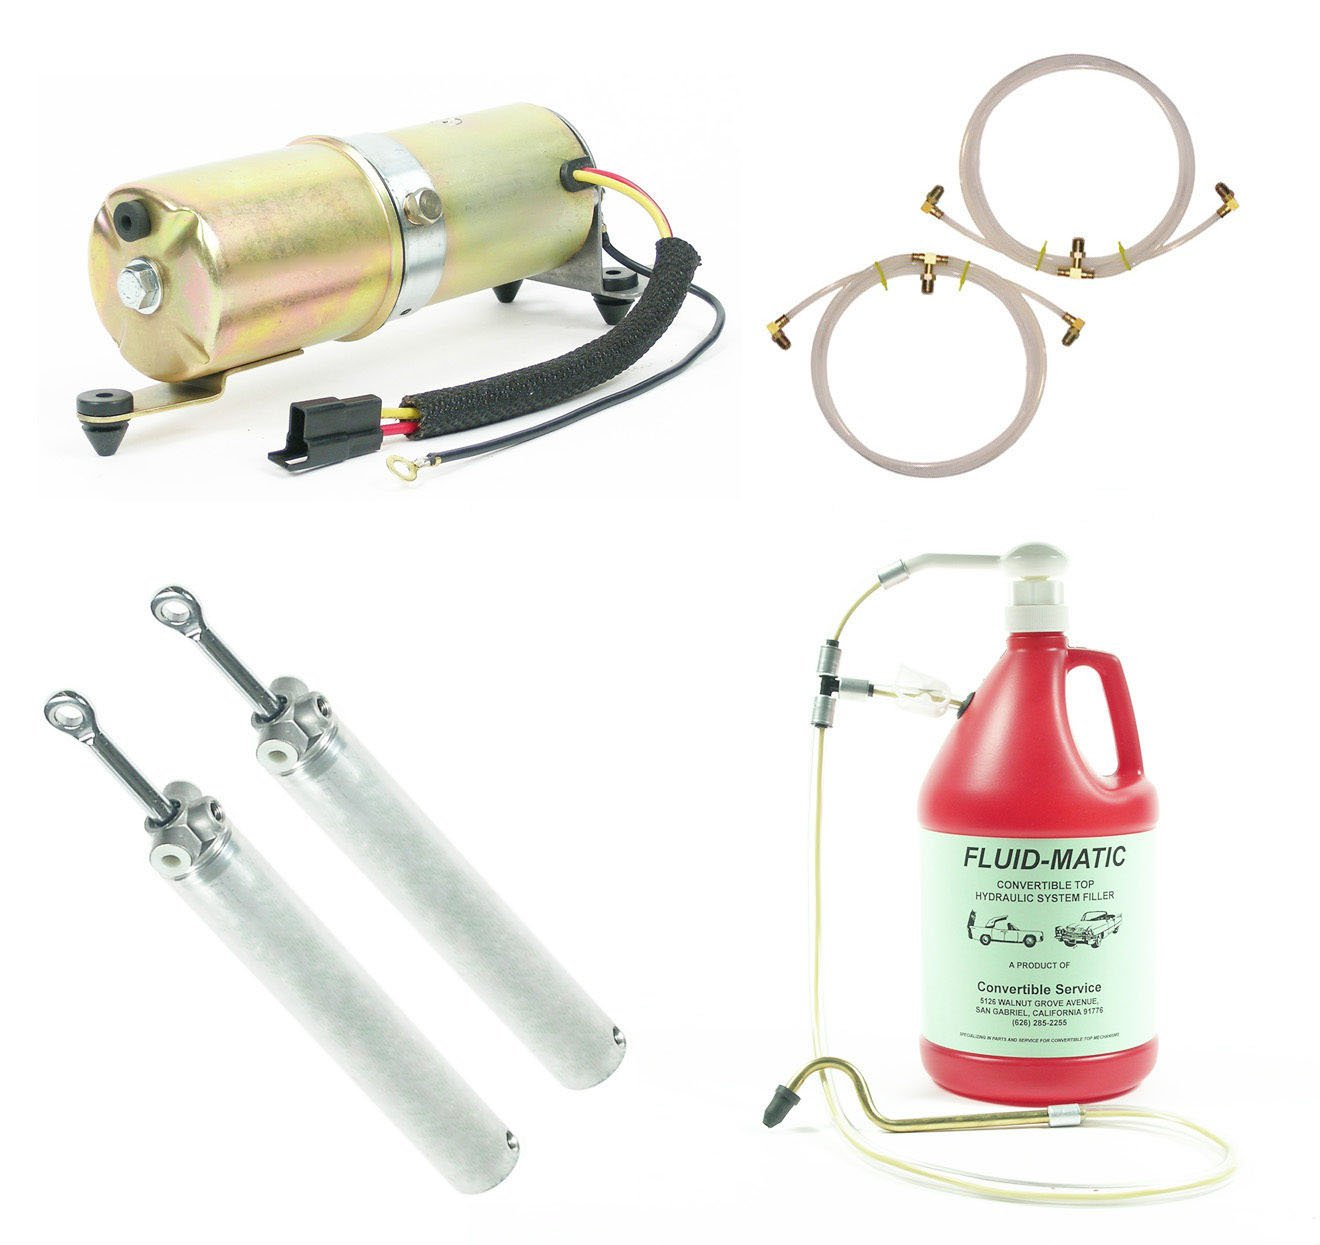 Convertible Top Hydraulic System Cylinders Hoses & Motor. FITS ALL 68-72 GM Mid Size Chevrolet Pontiac Olds Buick